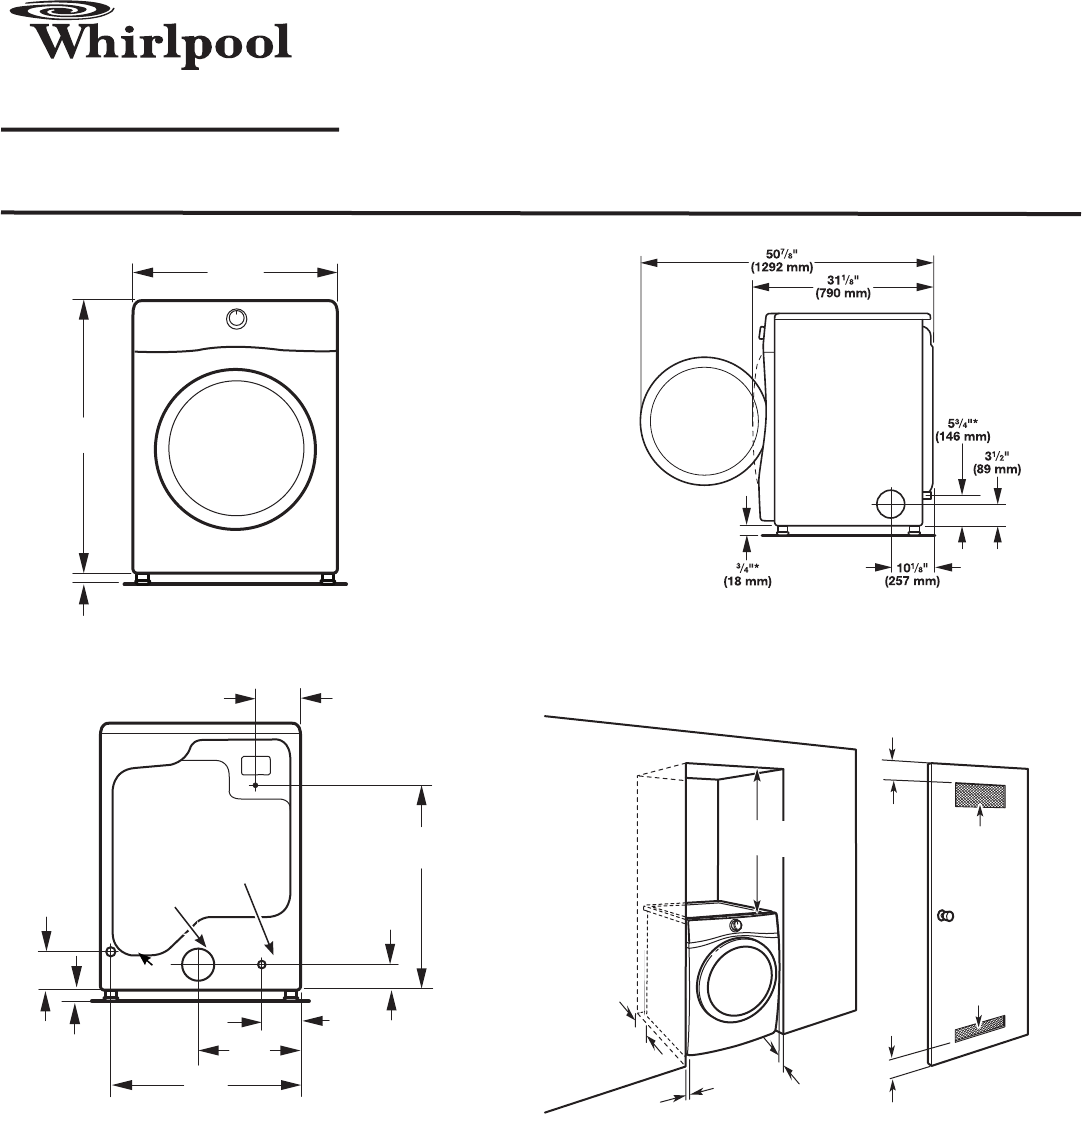 Whirlpool Clothes Dryer WGD97HEX User Guide